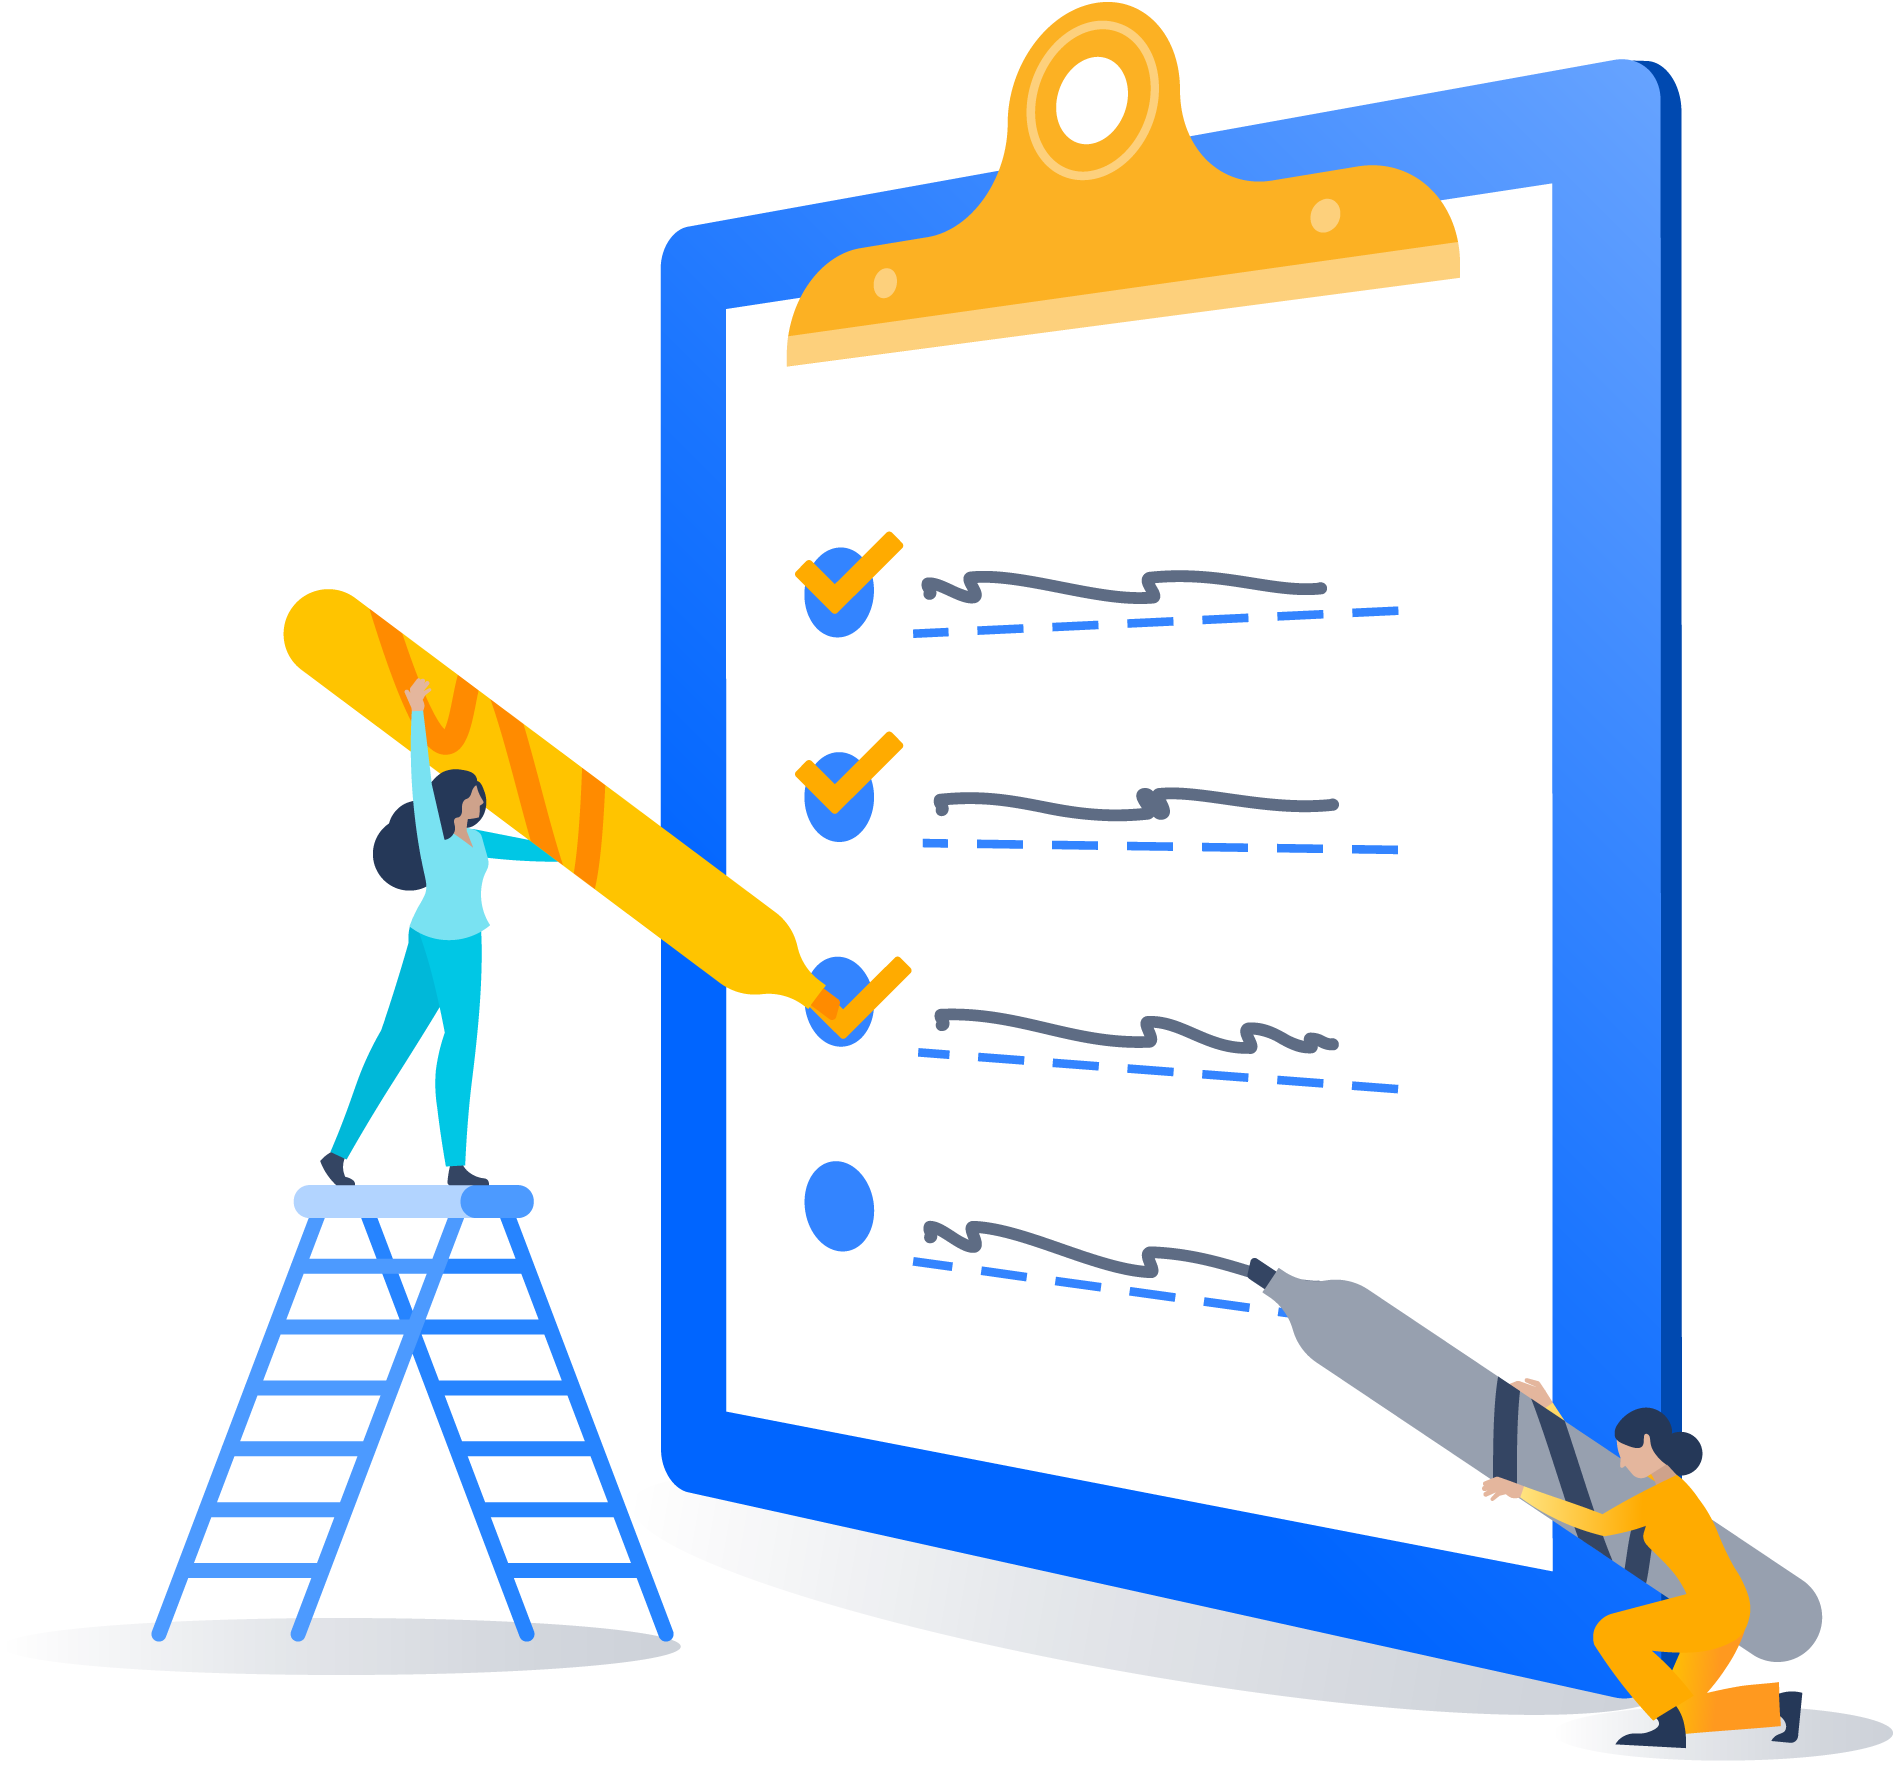 Staircase clipart work promotion. Your atlassian admin to